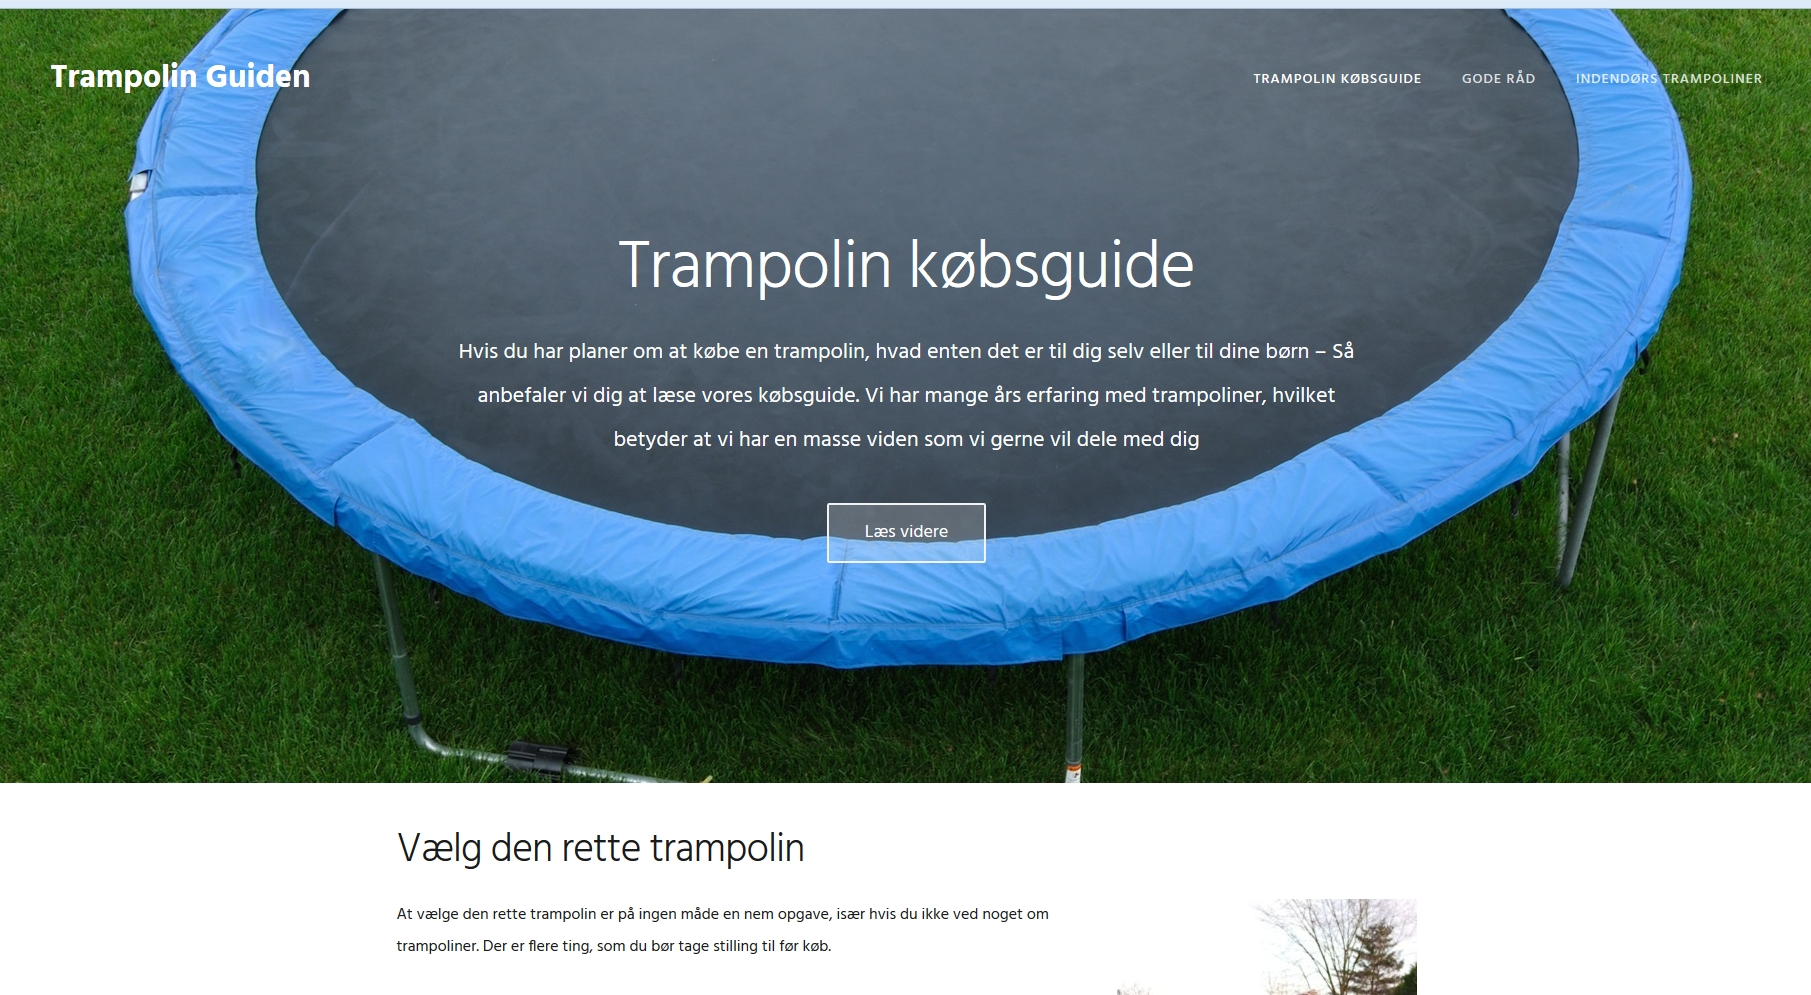 Trampolin guiden